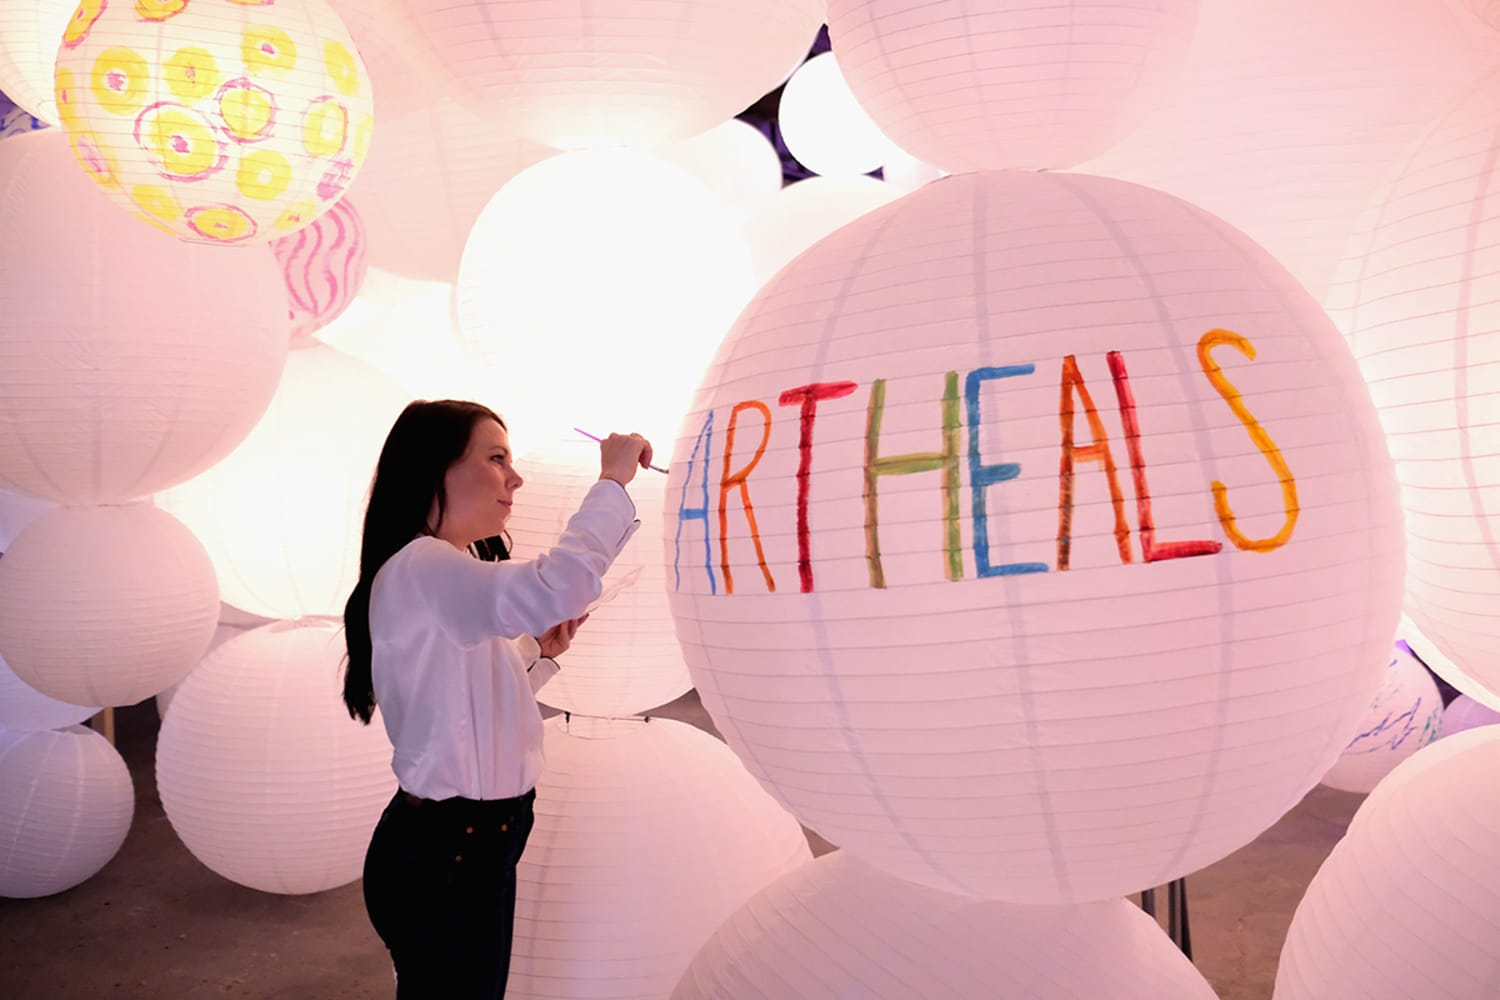 Art Heals by Art of Elysium at Refinery29 Third Annual 29 Rooms Turn It Into Art Press Preview